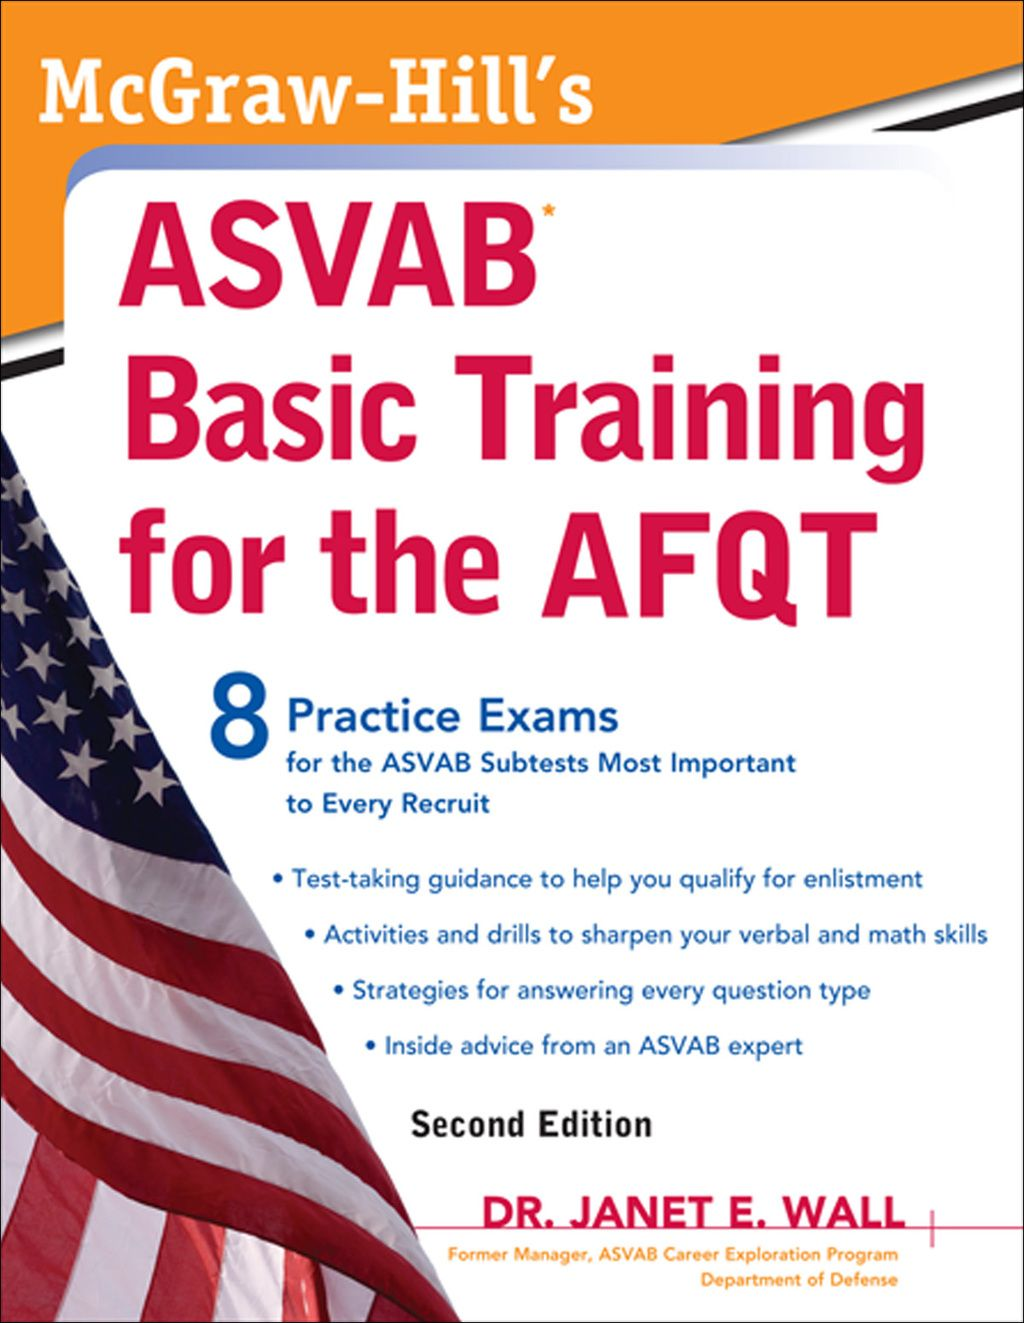 McGrawHill's ASVAB Basic Training for the AFQT Second